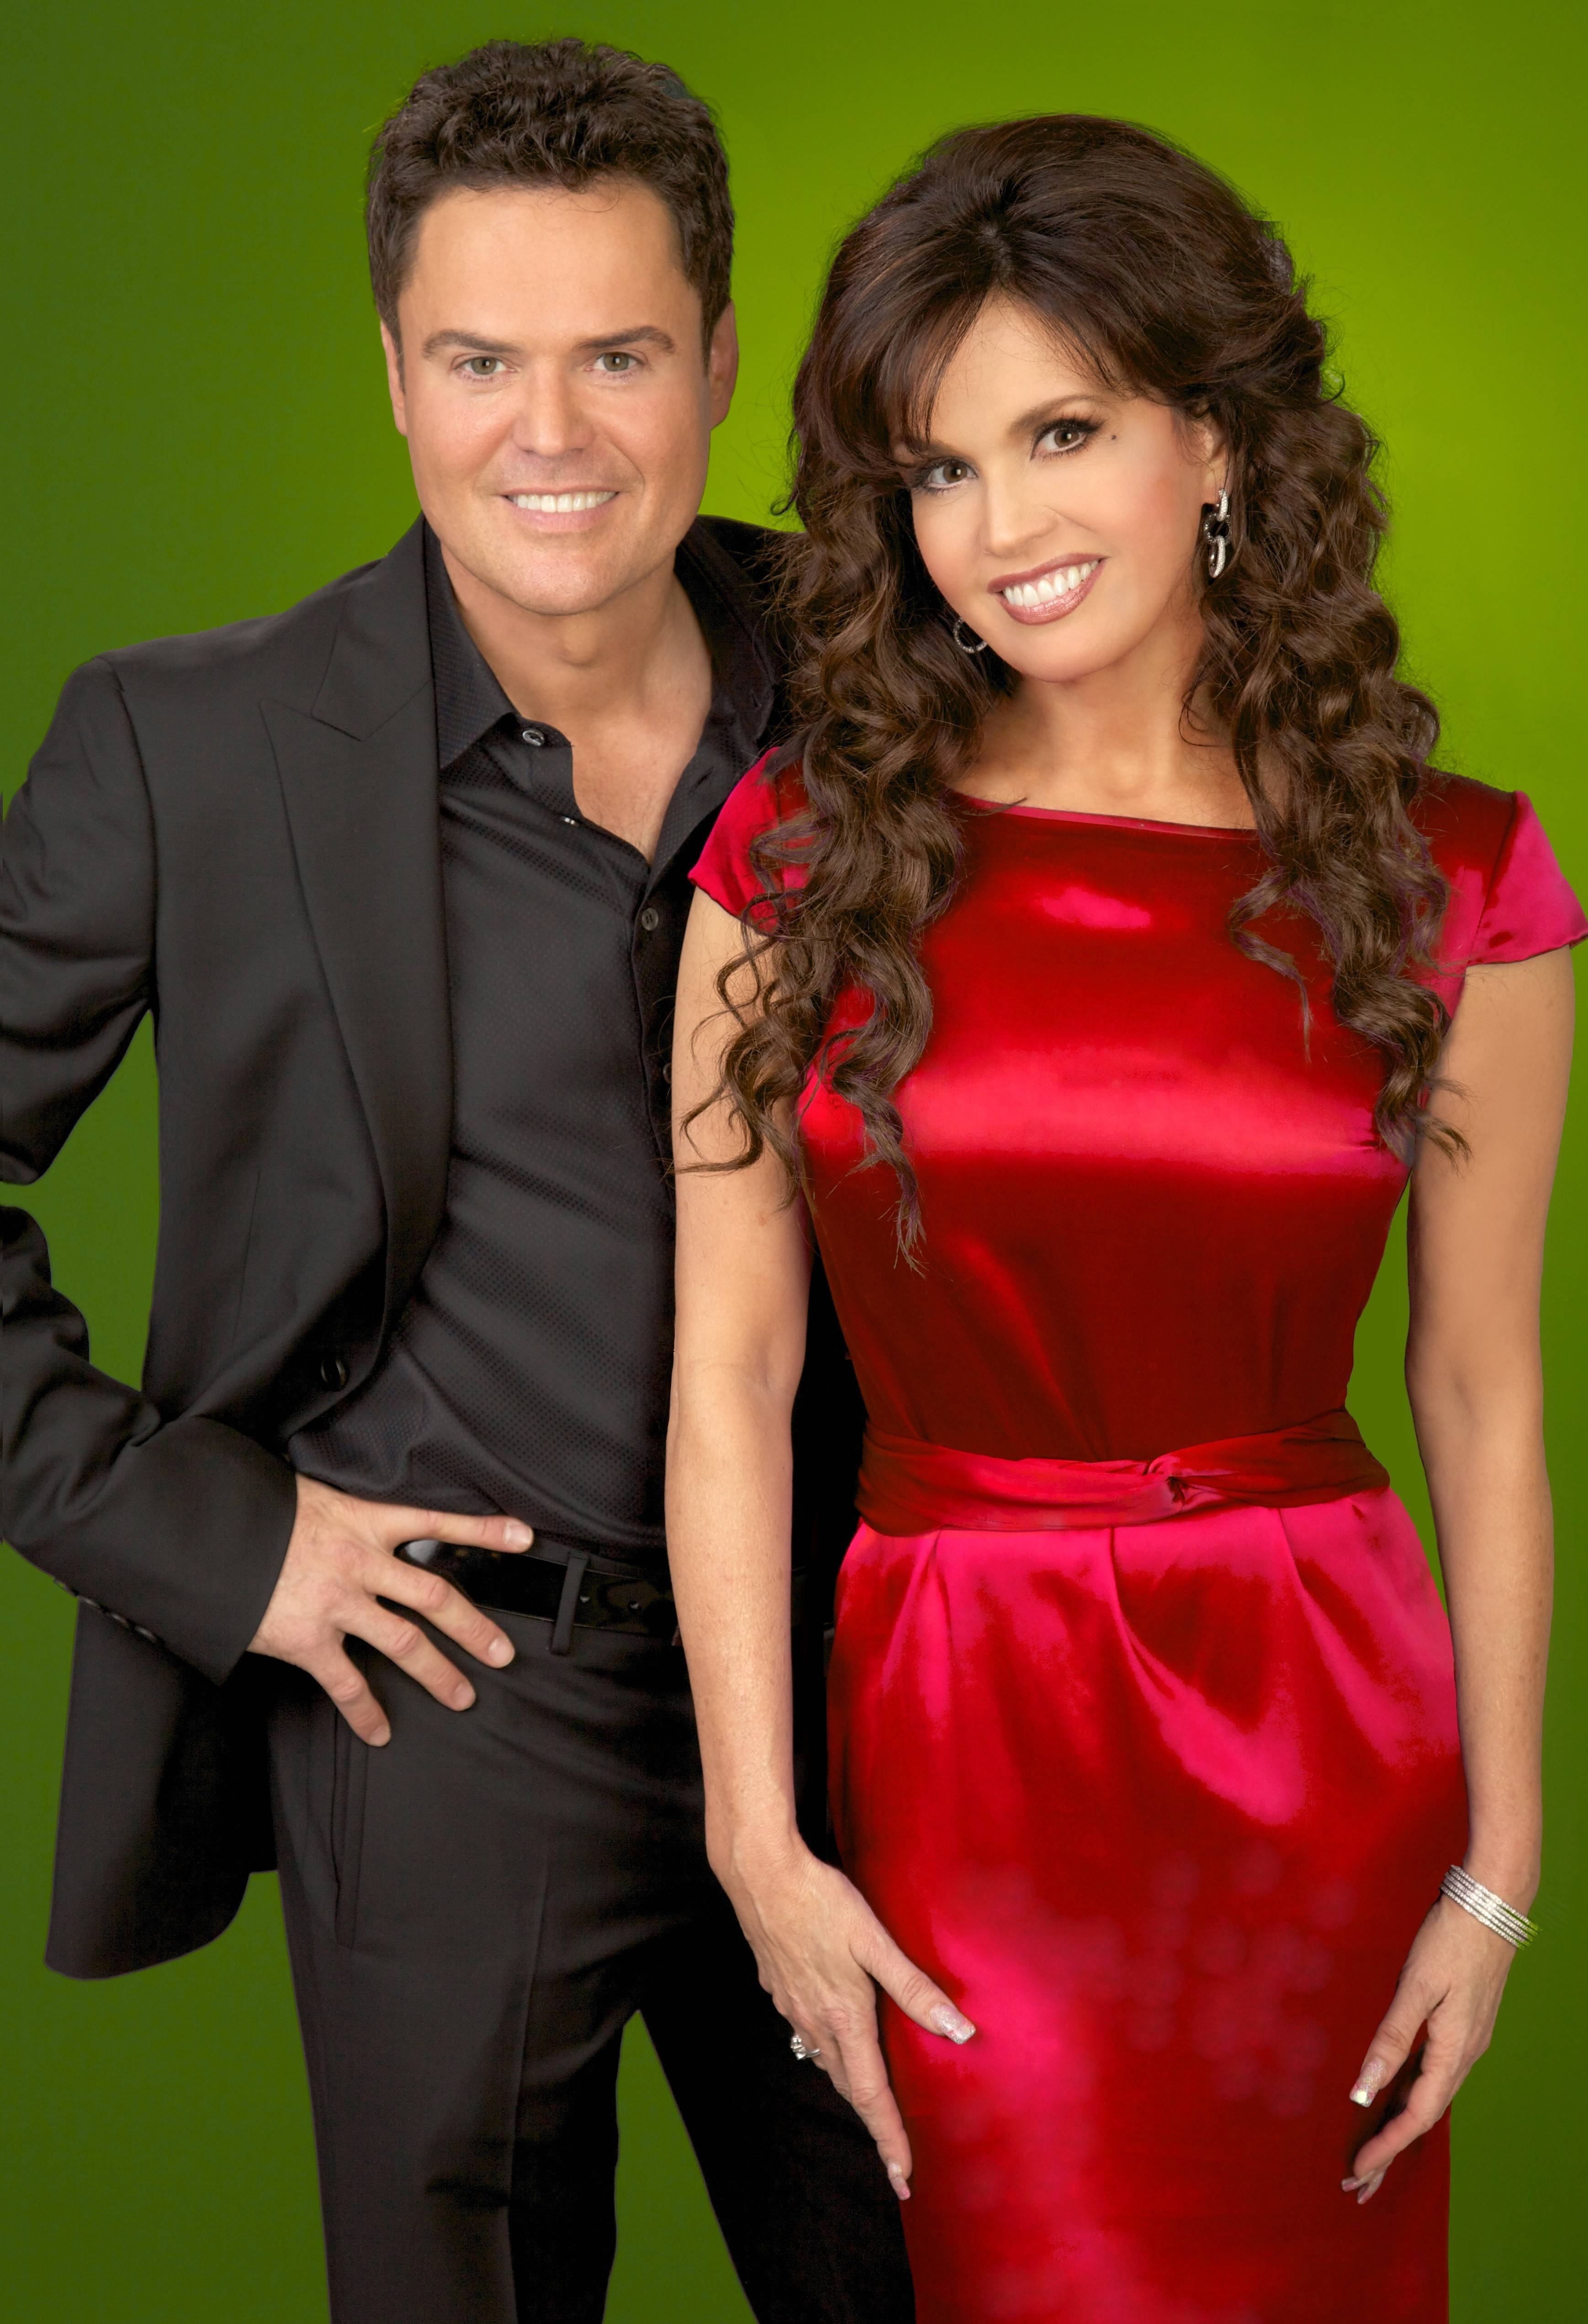 Donny and Marie Osmond perform four shows Saturday and Sunday at the Paramount Theatre in Aurora.